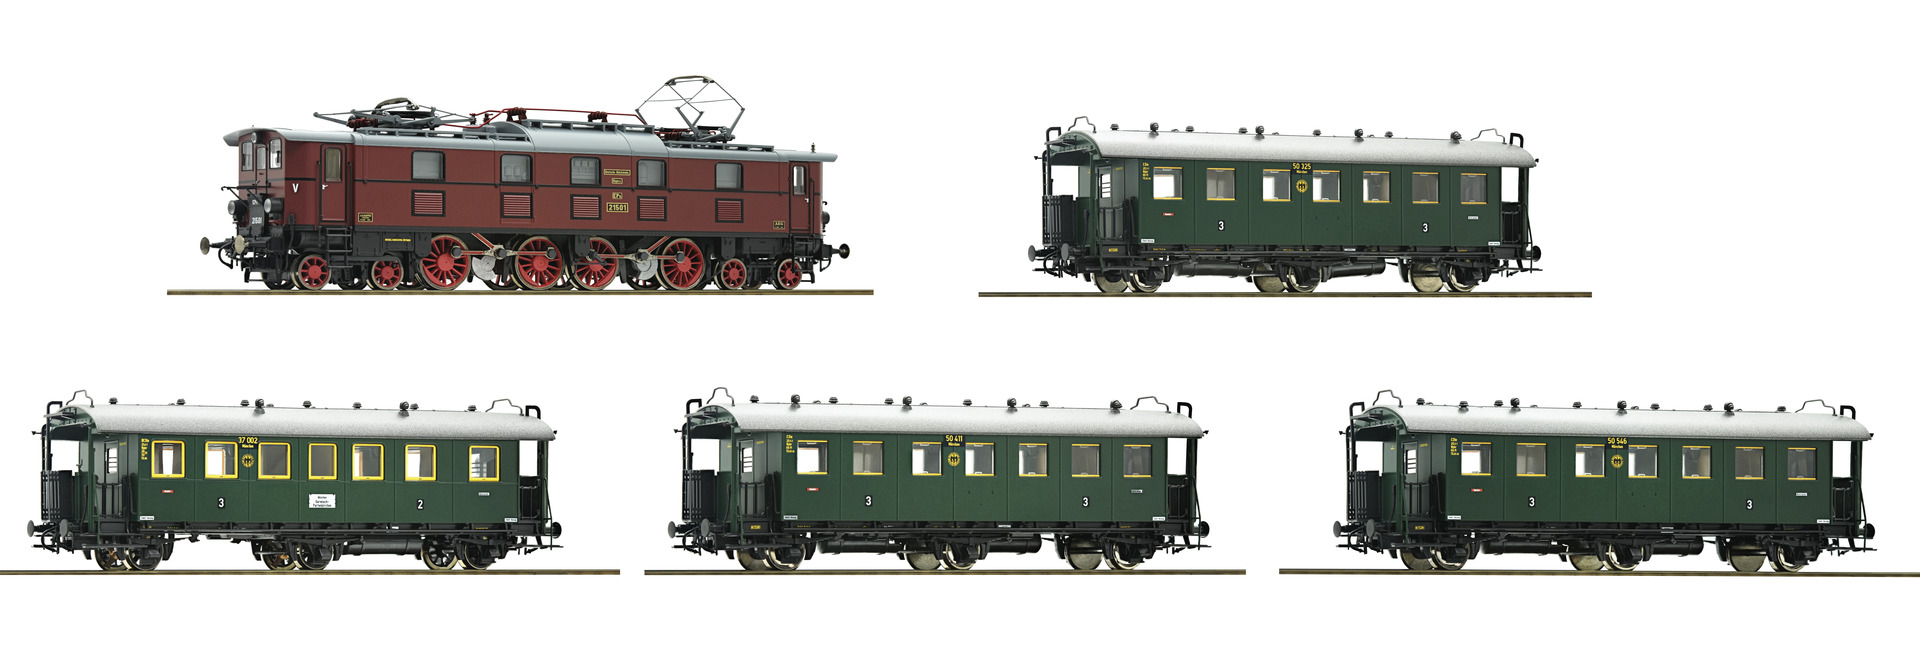 FLM481471 KBay train set, 130 year Fleischmann